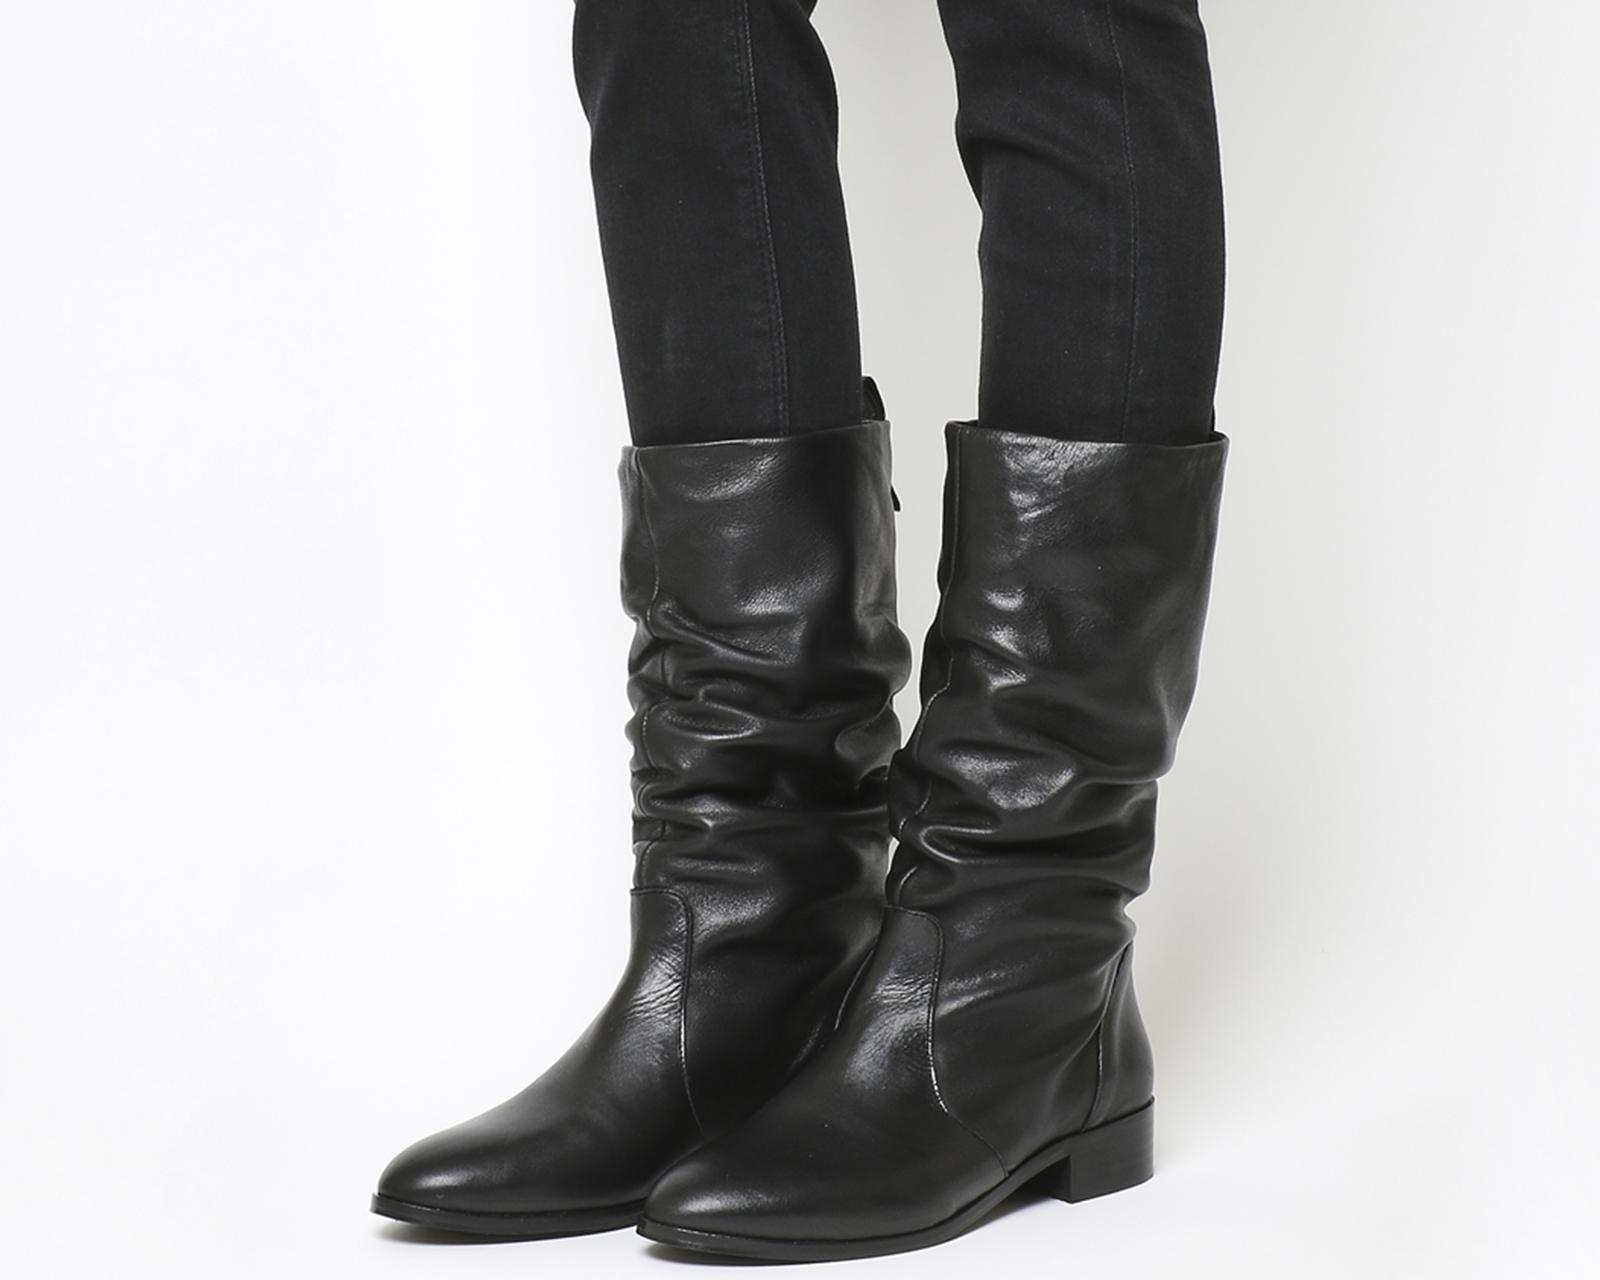 cc06716654cd Lyst - Office Knoxville Ruched Calf Boots in Black